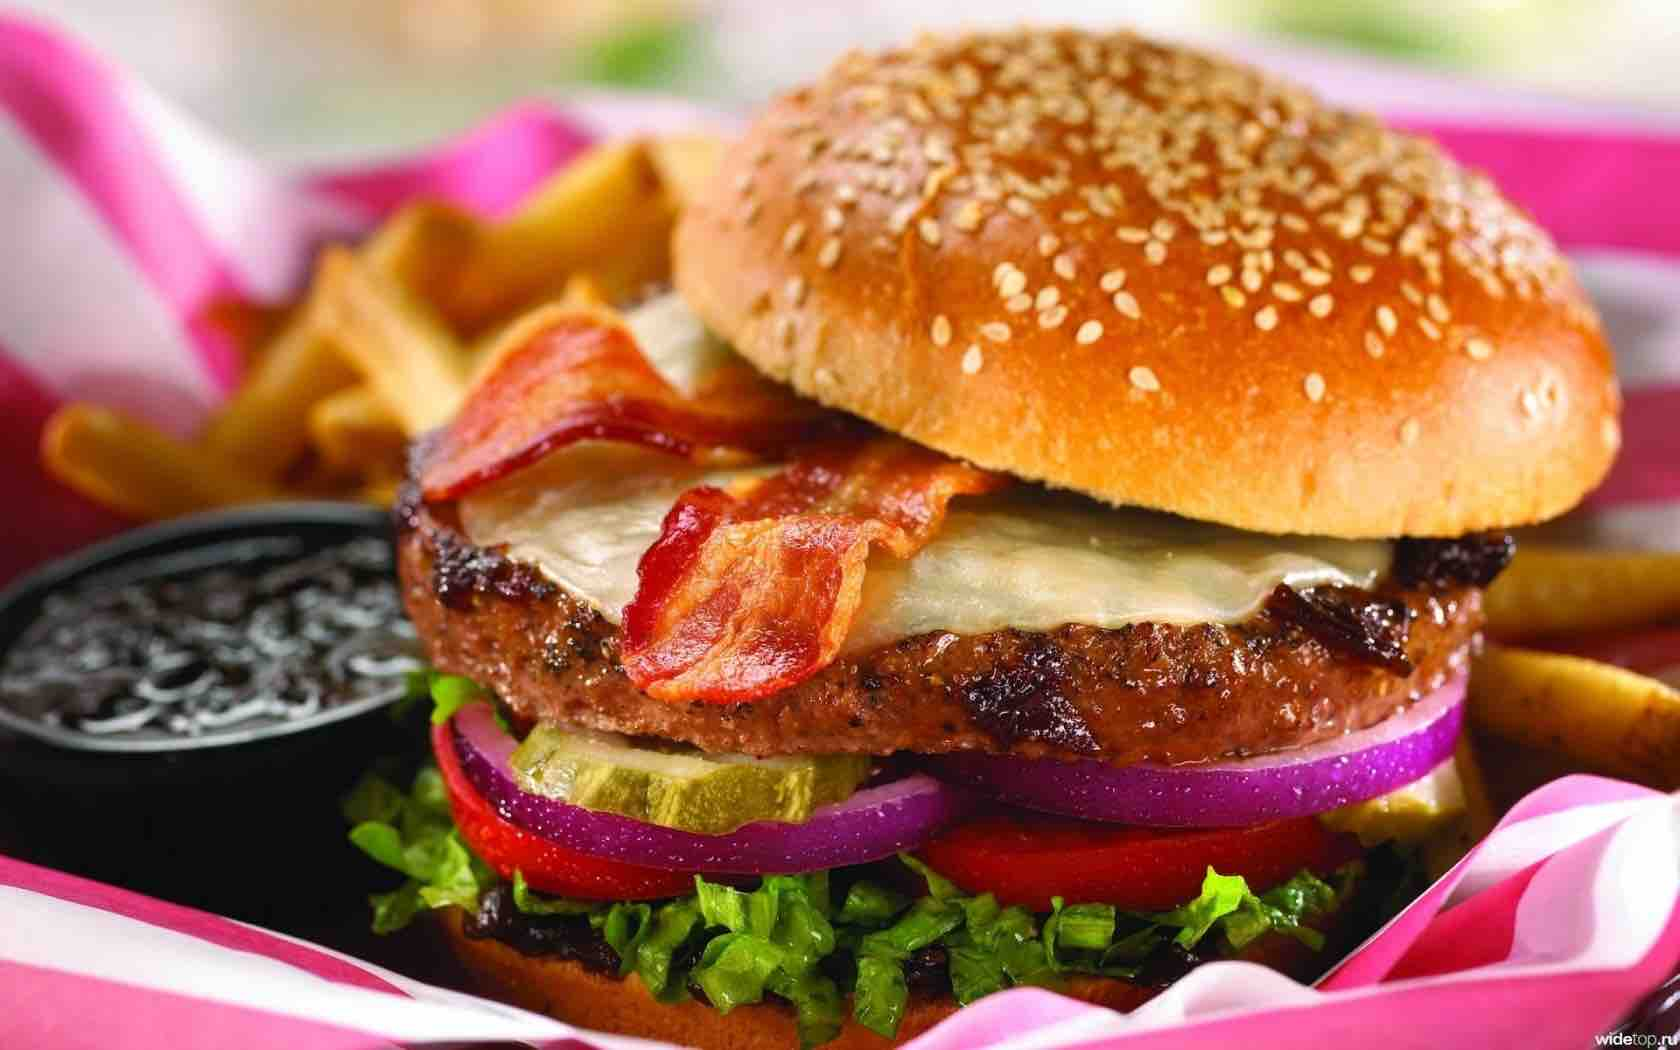 Does a 'Western Diet' Increase Risk of Alzheimer's Disease?